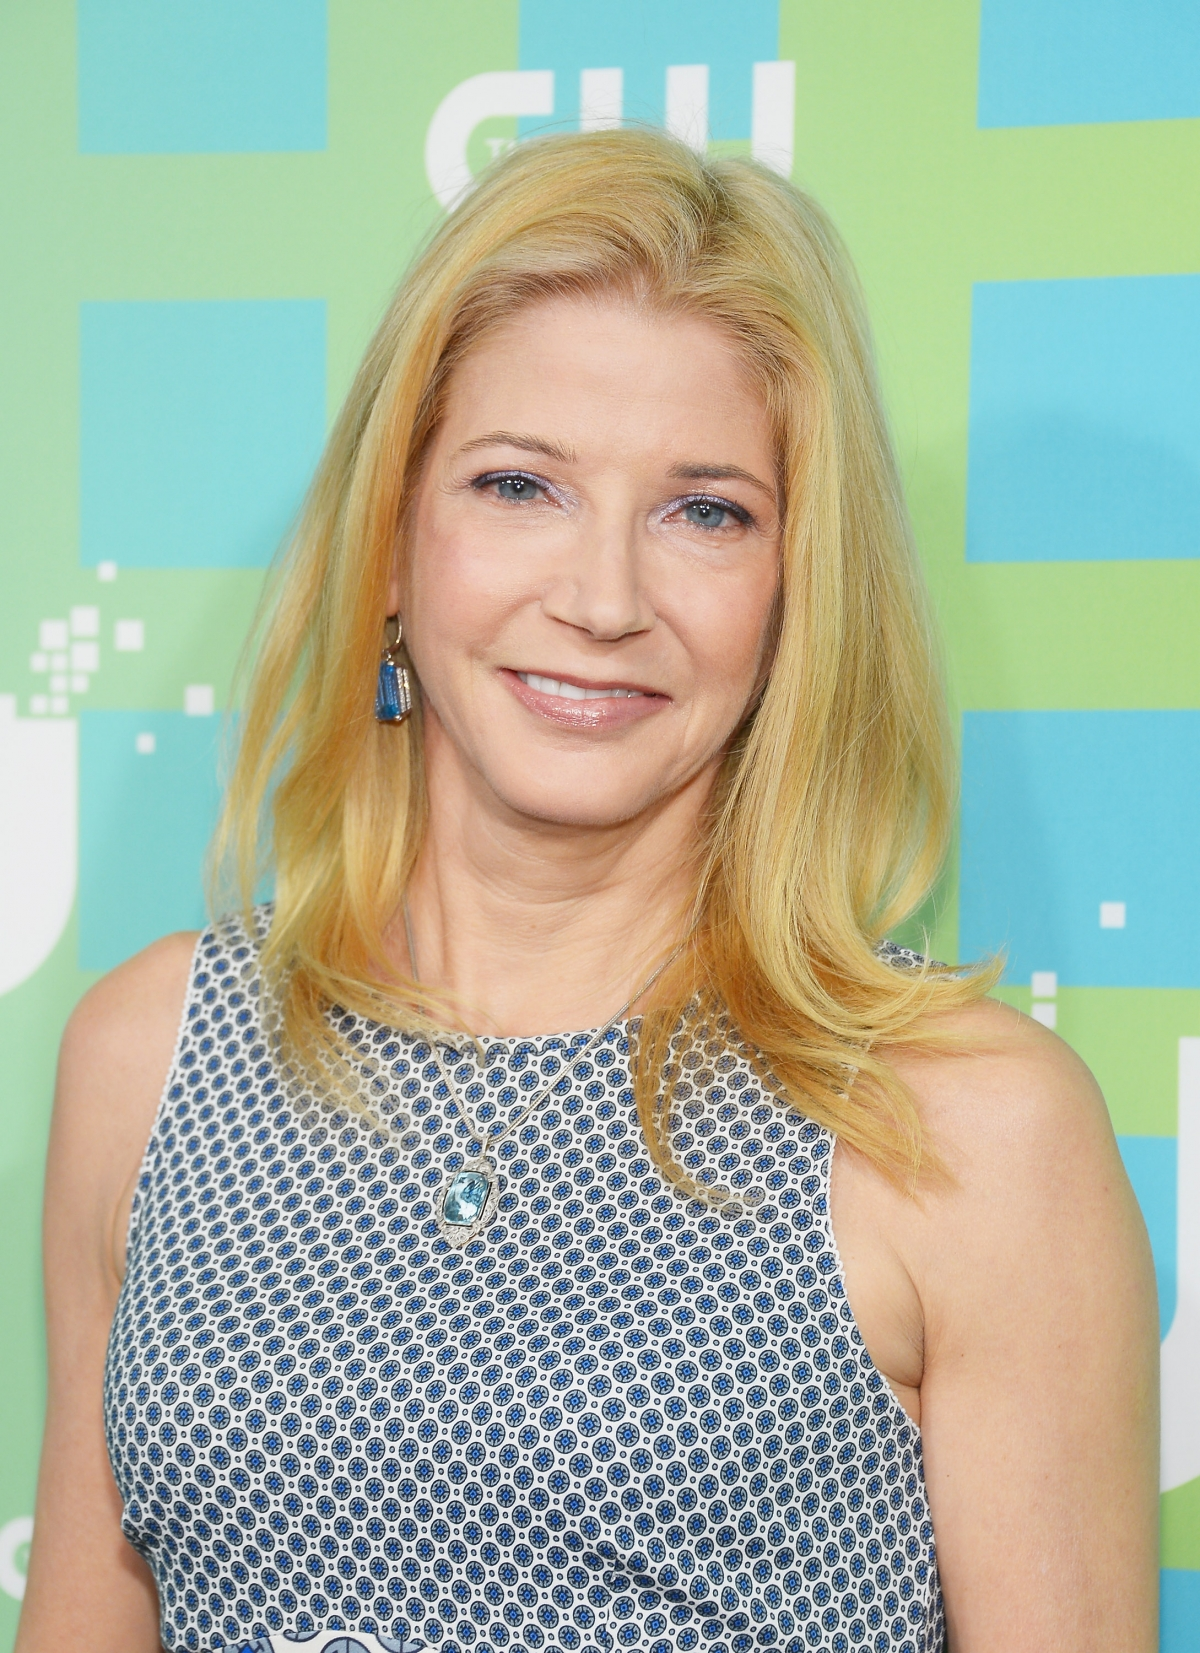 Candace Bushnell Candace Bushnell Sex And The City Writer Recalls Behind The